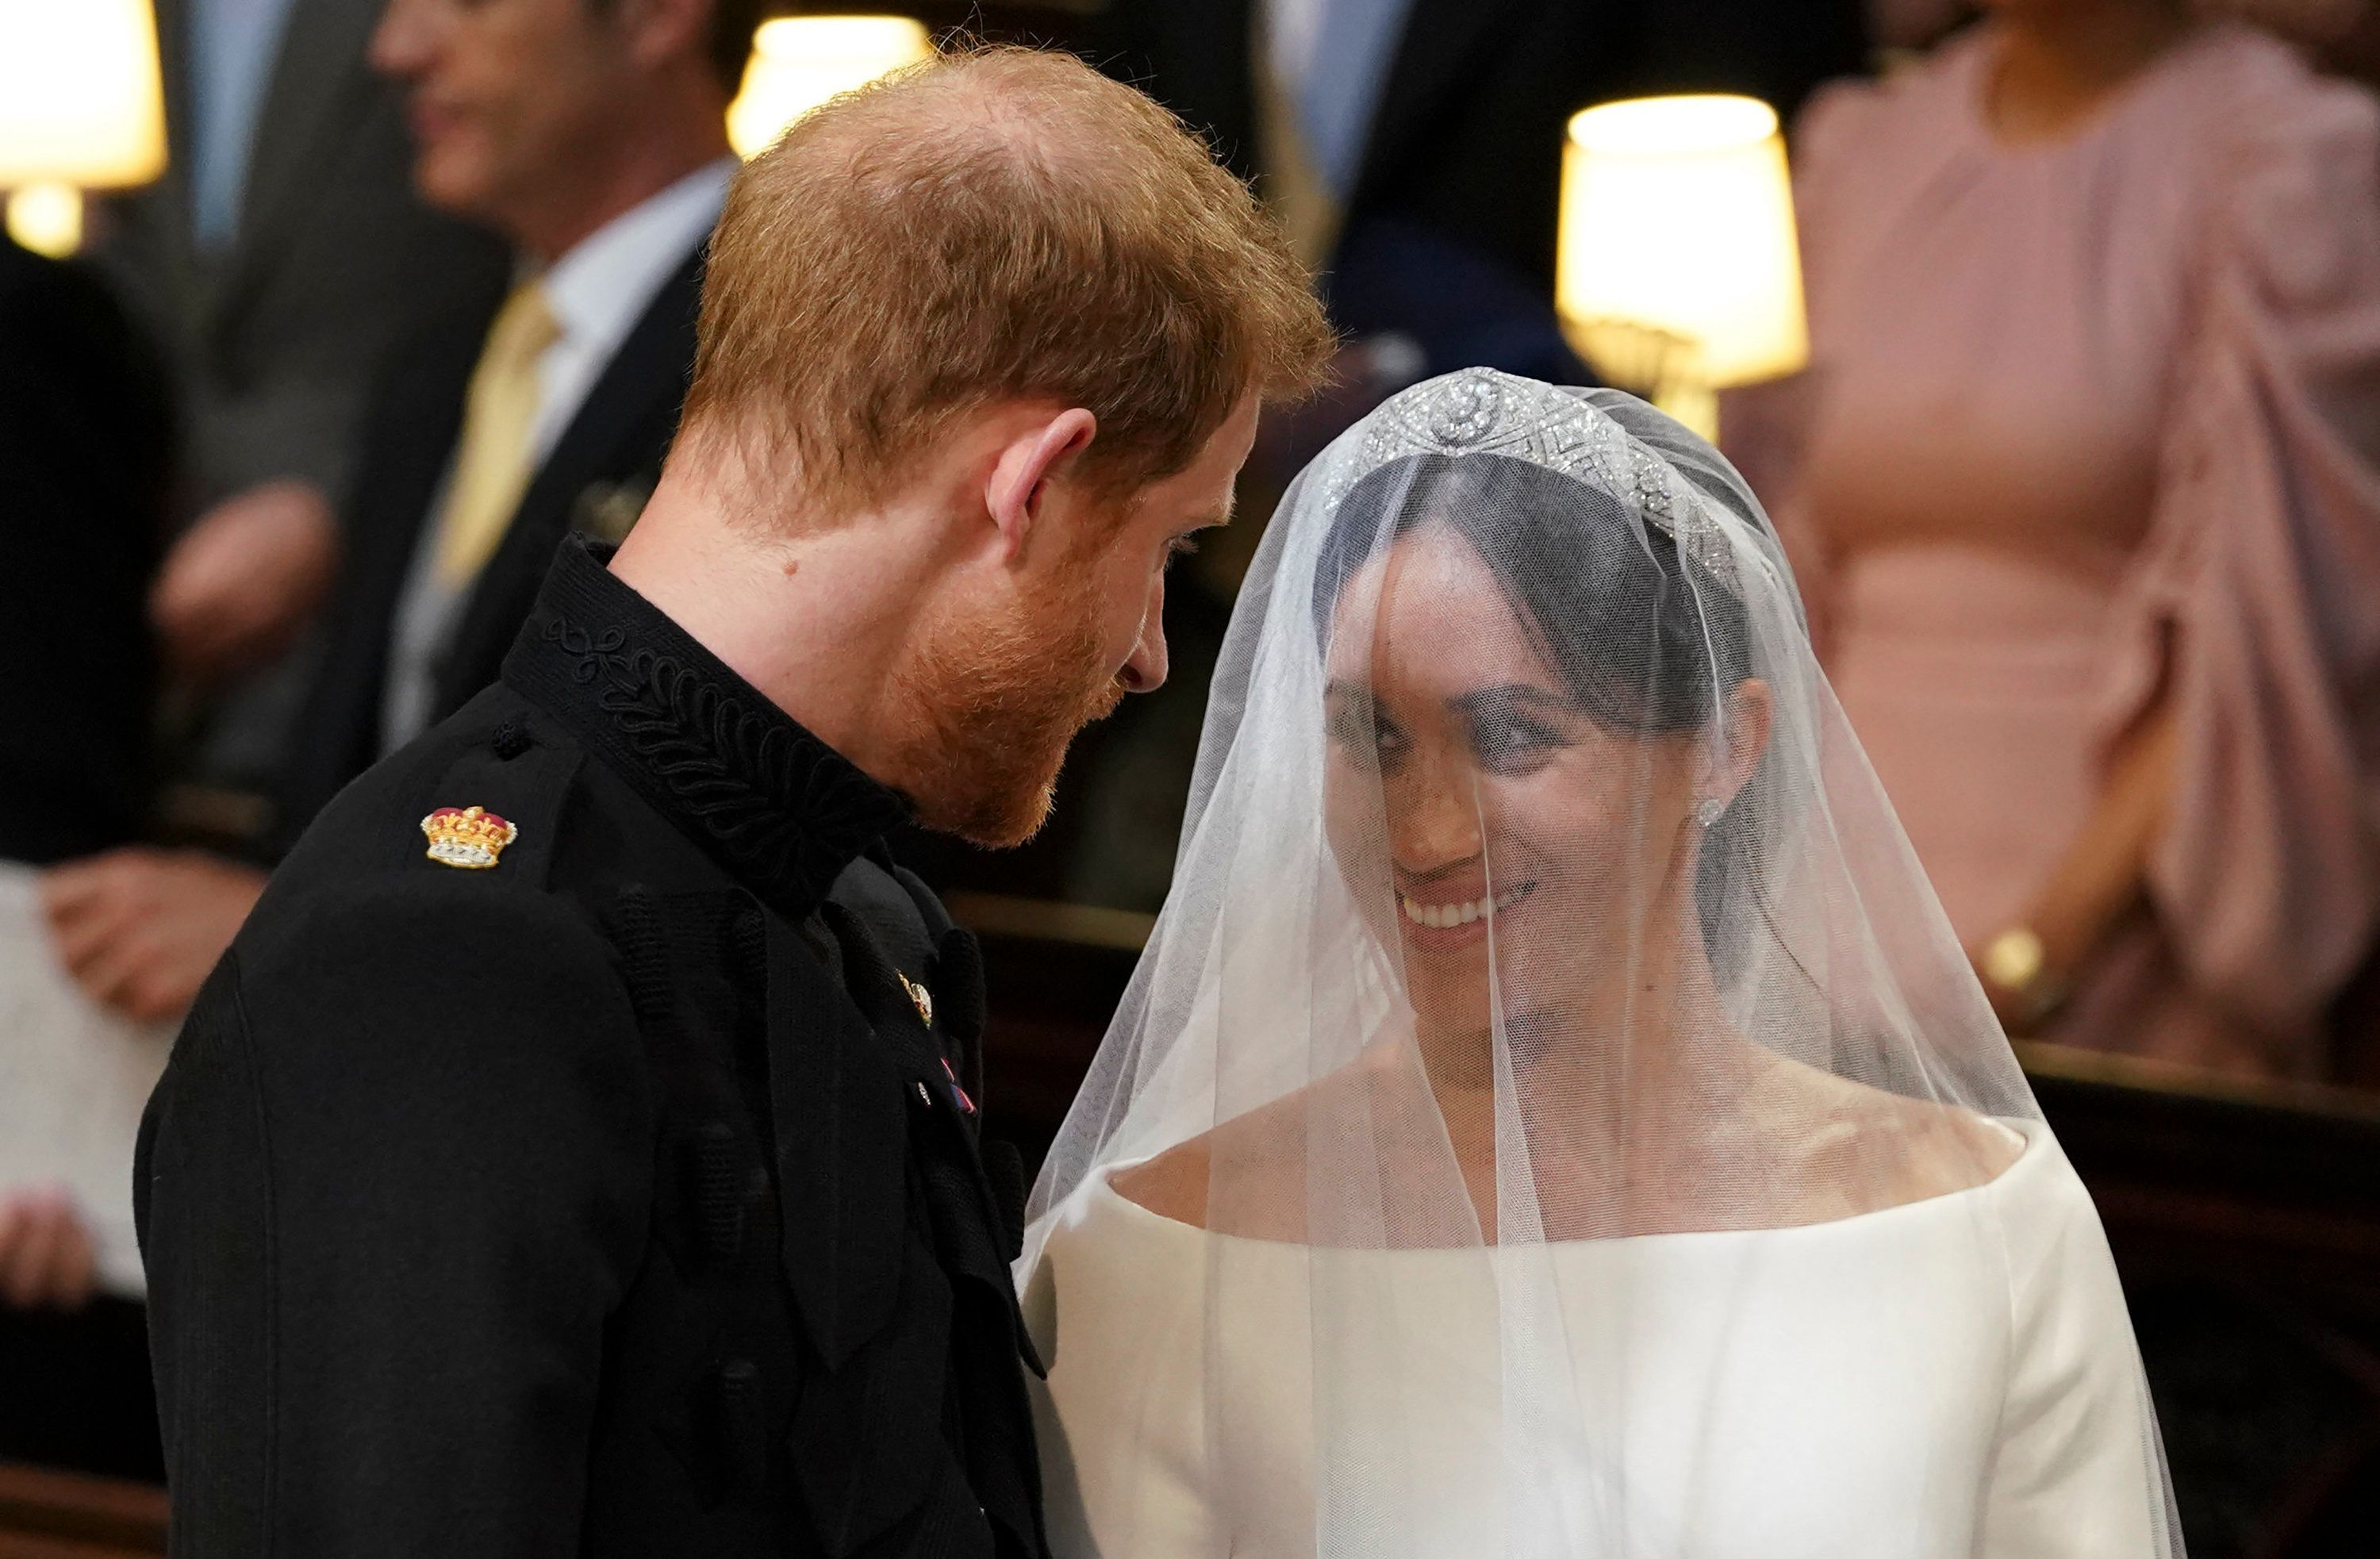 Did Harry Tell Meghan 'I'm Sh*tting It' At The Altar? UPDATE: Erm, no.